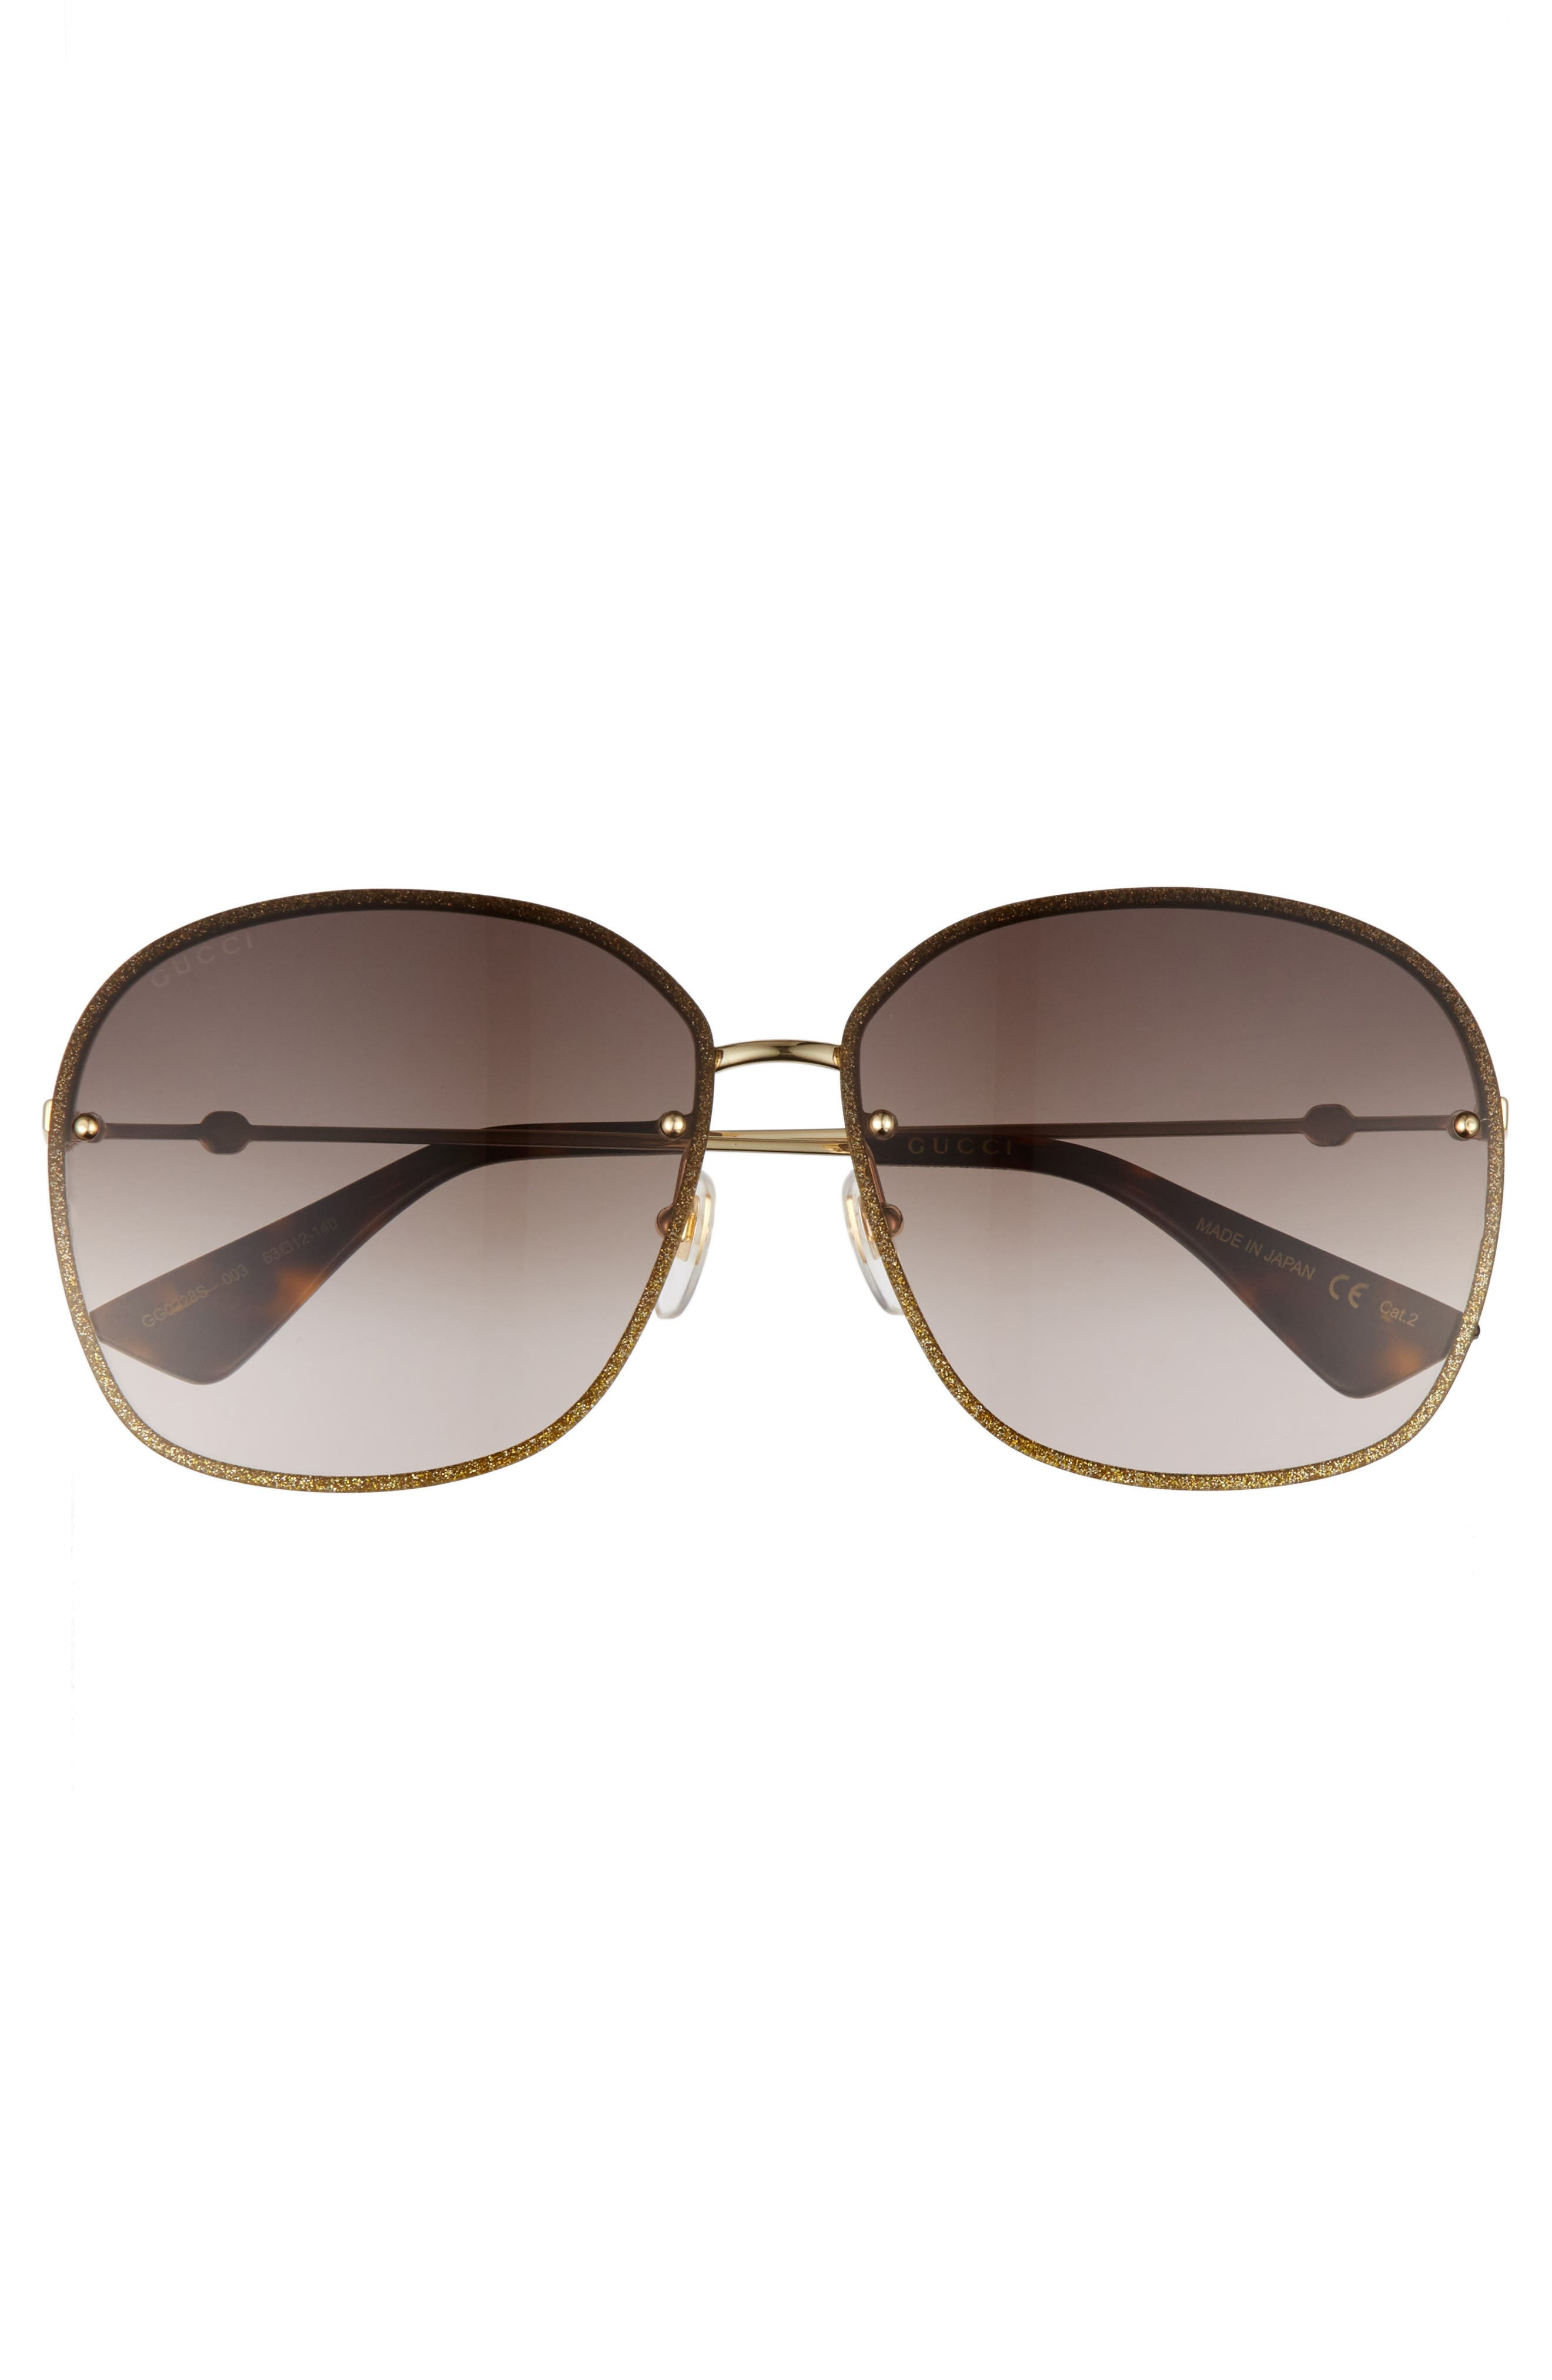 63mm Oversize Square Sunglasses,                             Alternate thumbnail 3, color,                             GOLD/ BROWN